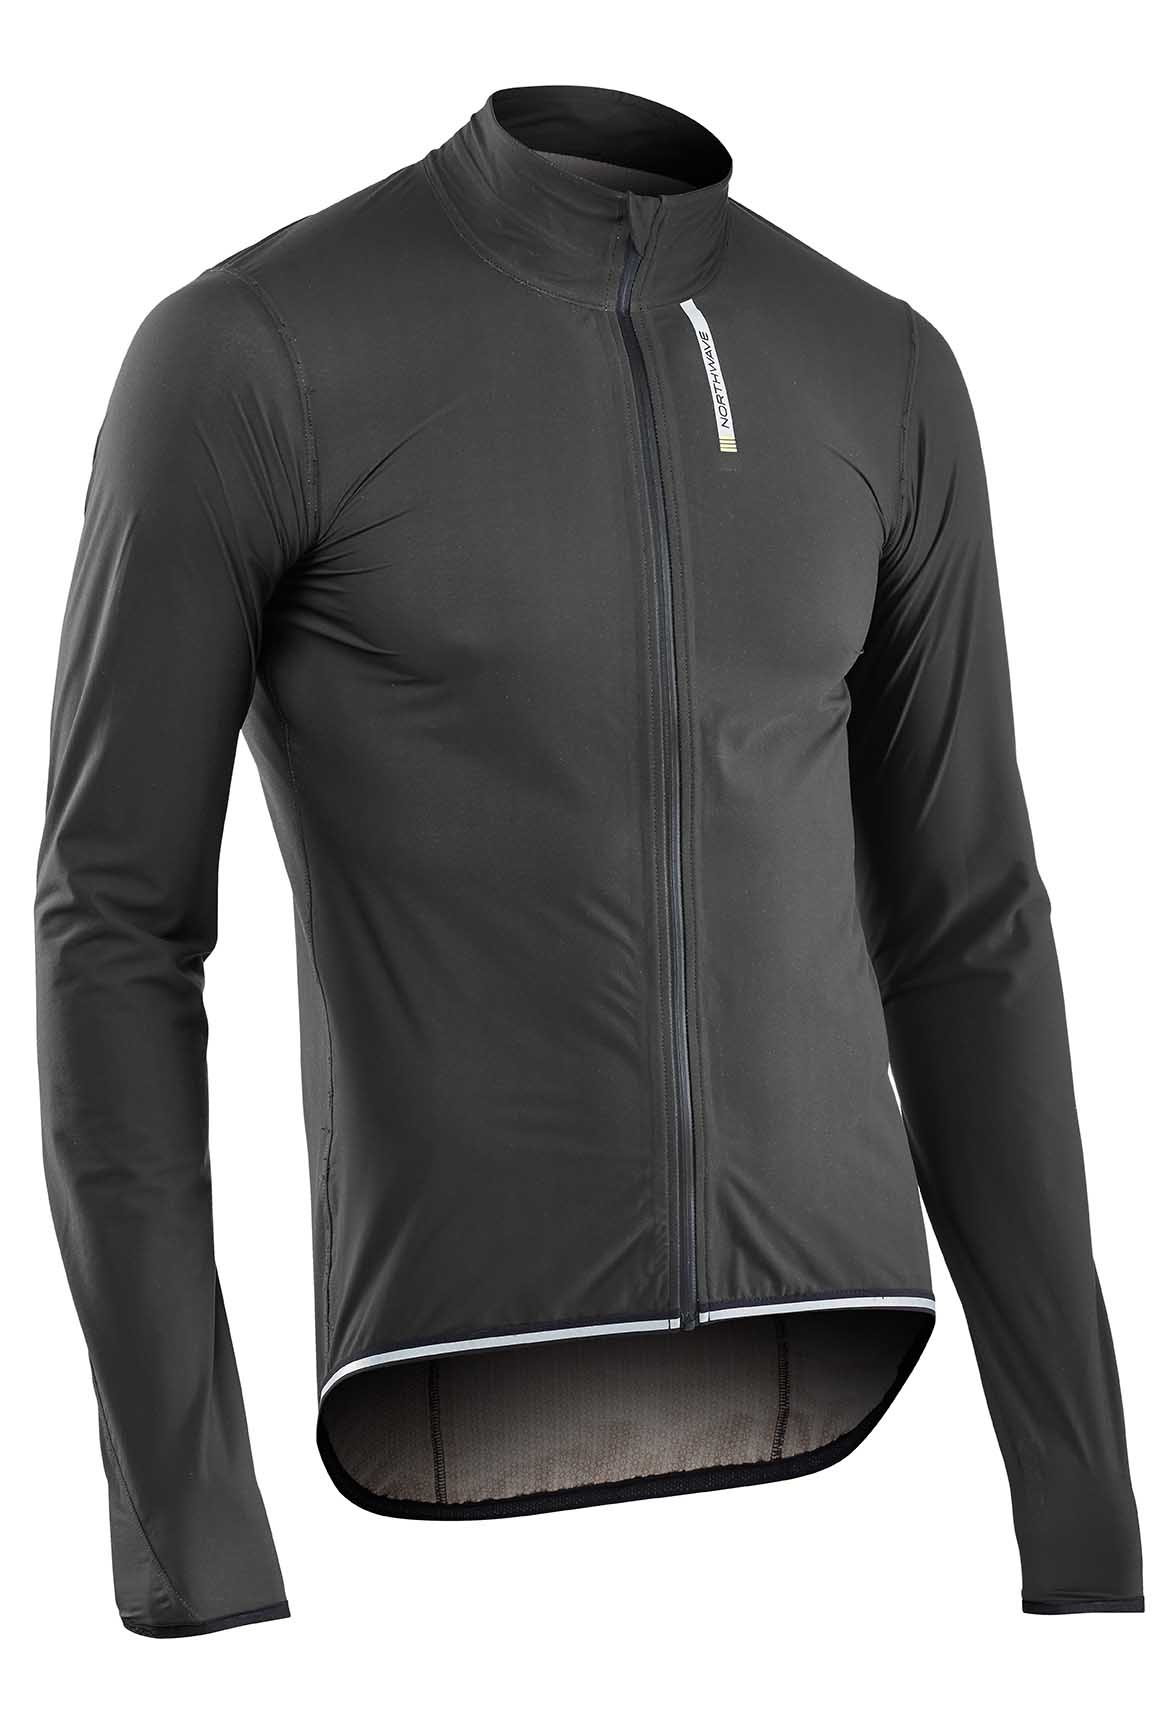 Giacca Antivento e Antipioggia Ciclismo Northwave RainSkin Shield Jacket ANTHRACITE